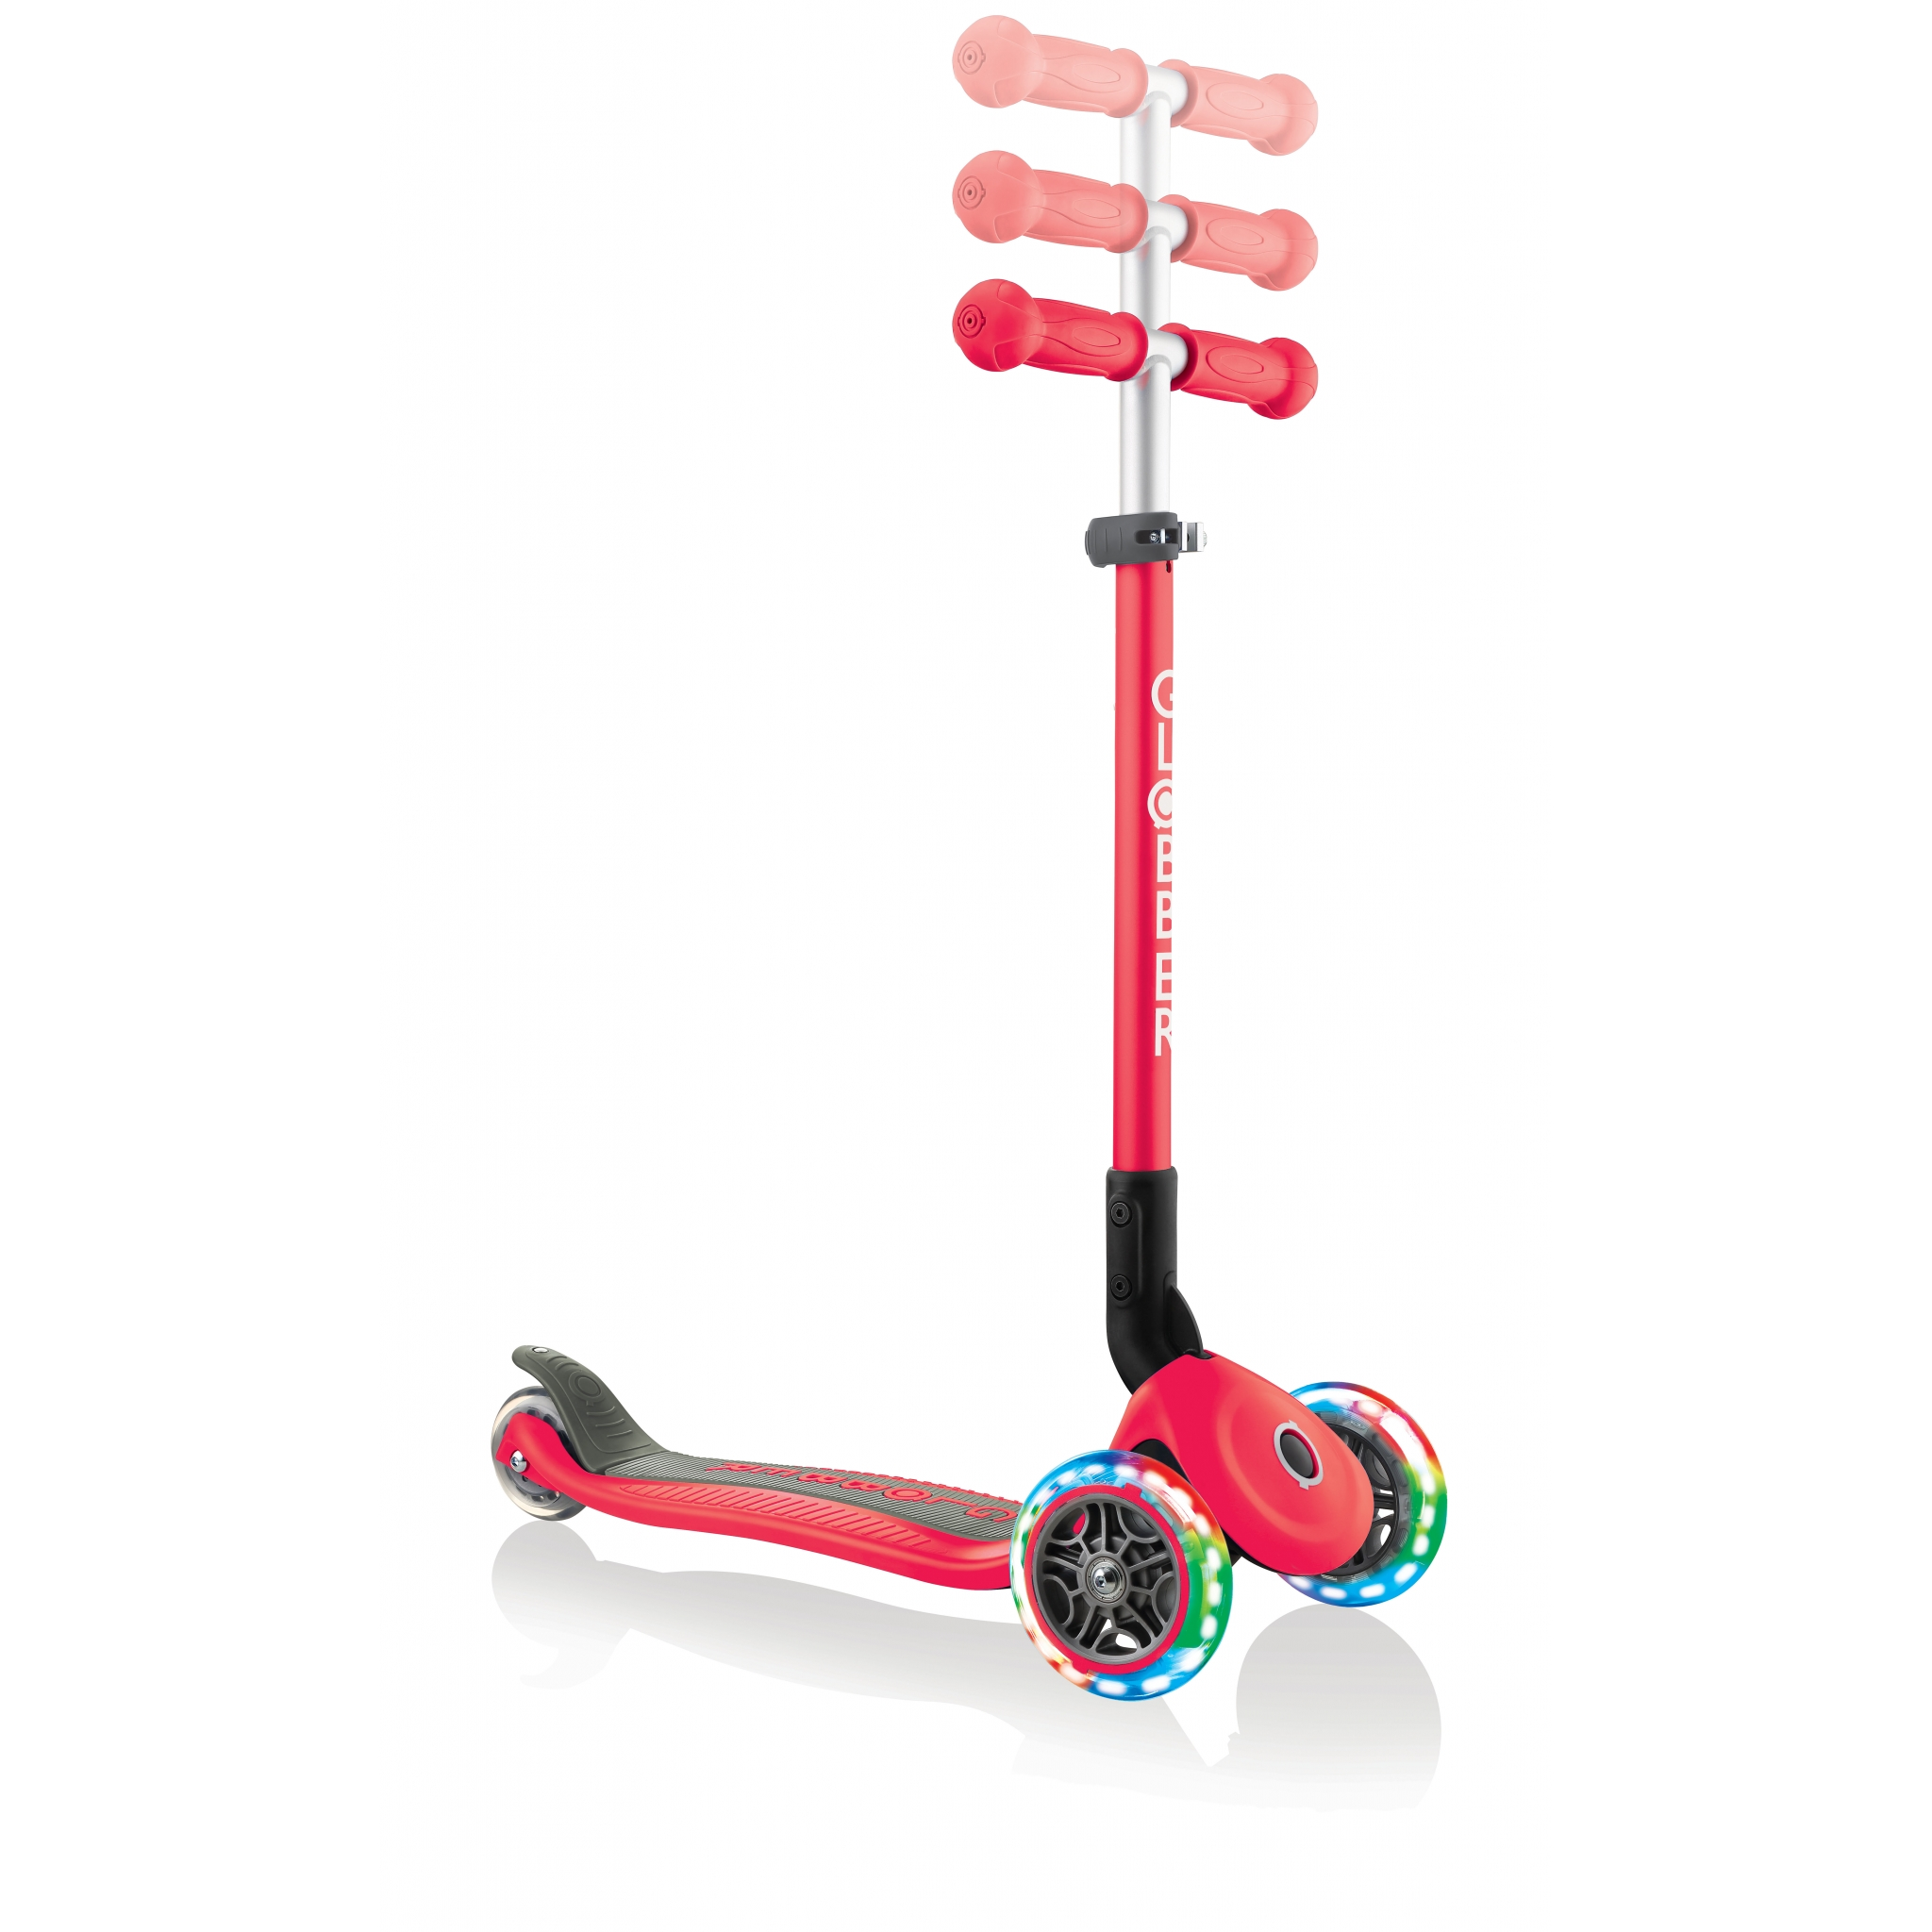 PRIMO-FOLDABLE-LIGHTS-adjustable-scooter-for-kids-new-red 5